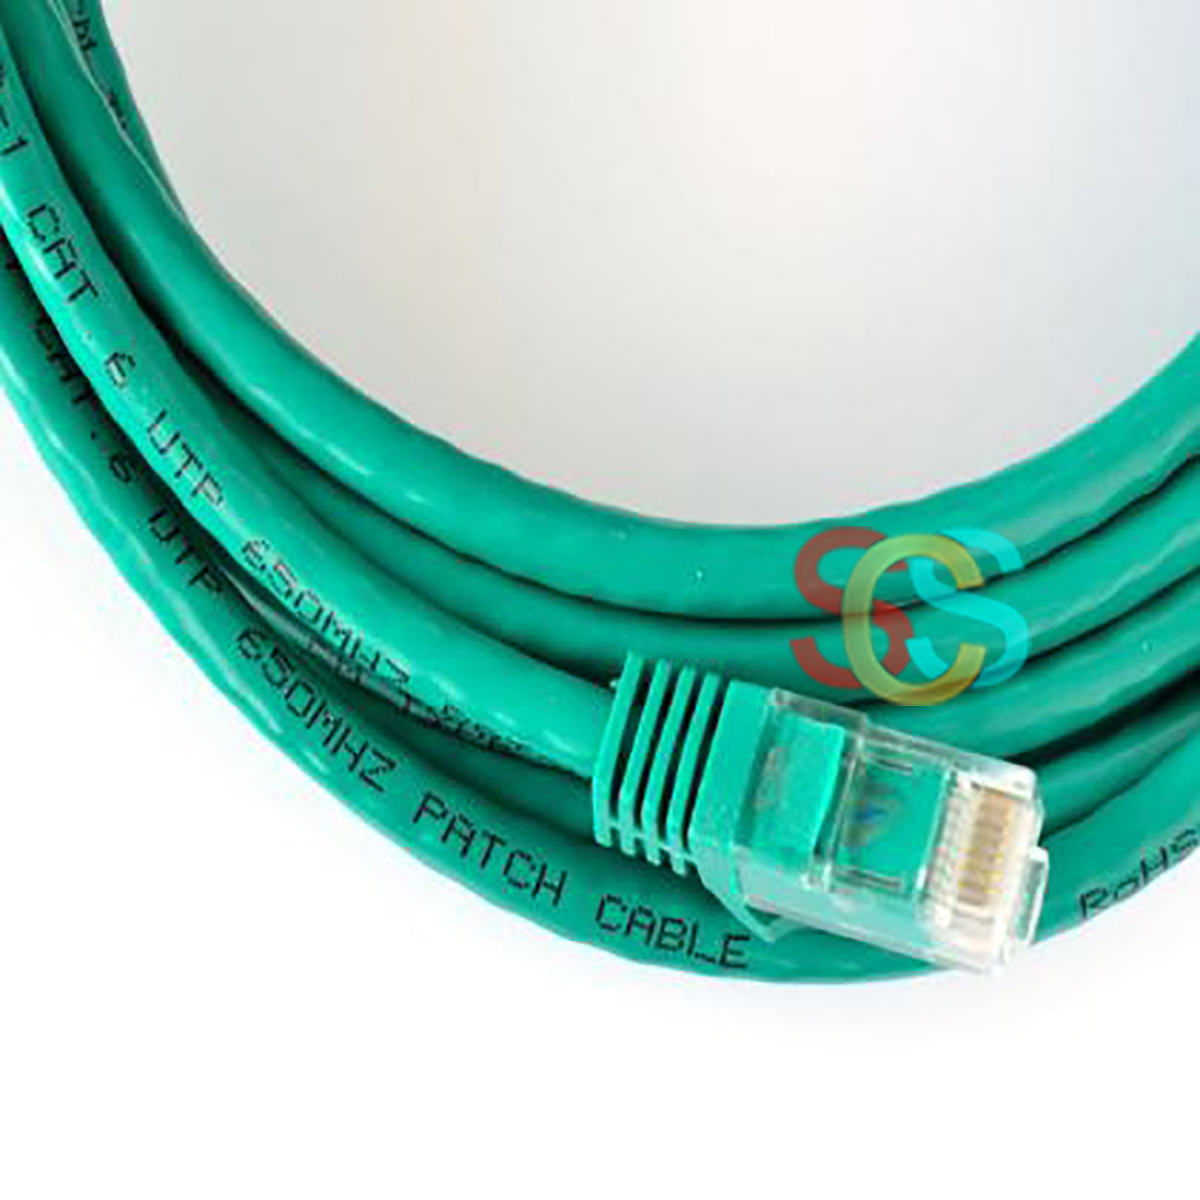 D-Link Cat-6, 1 Meter, Green Network Cable